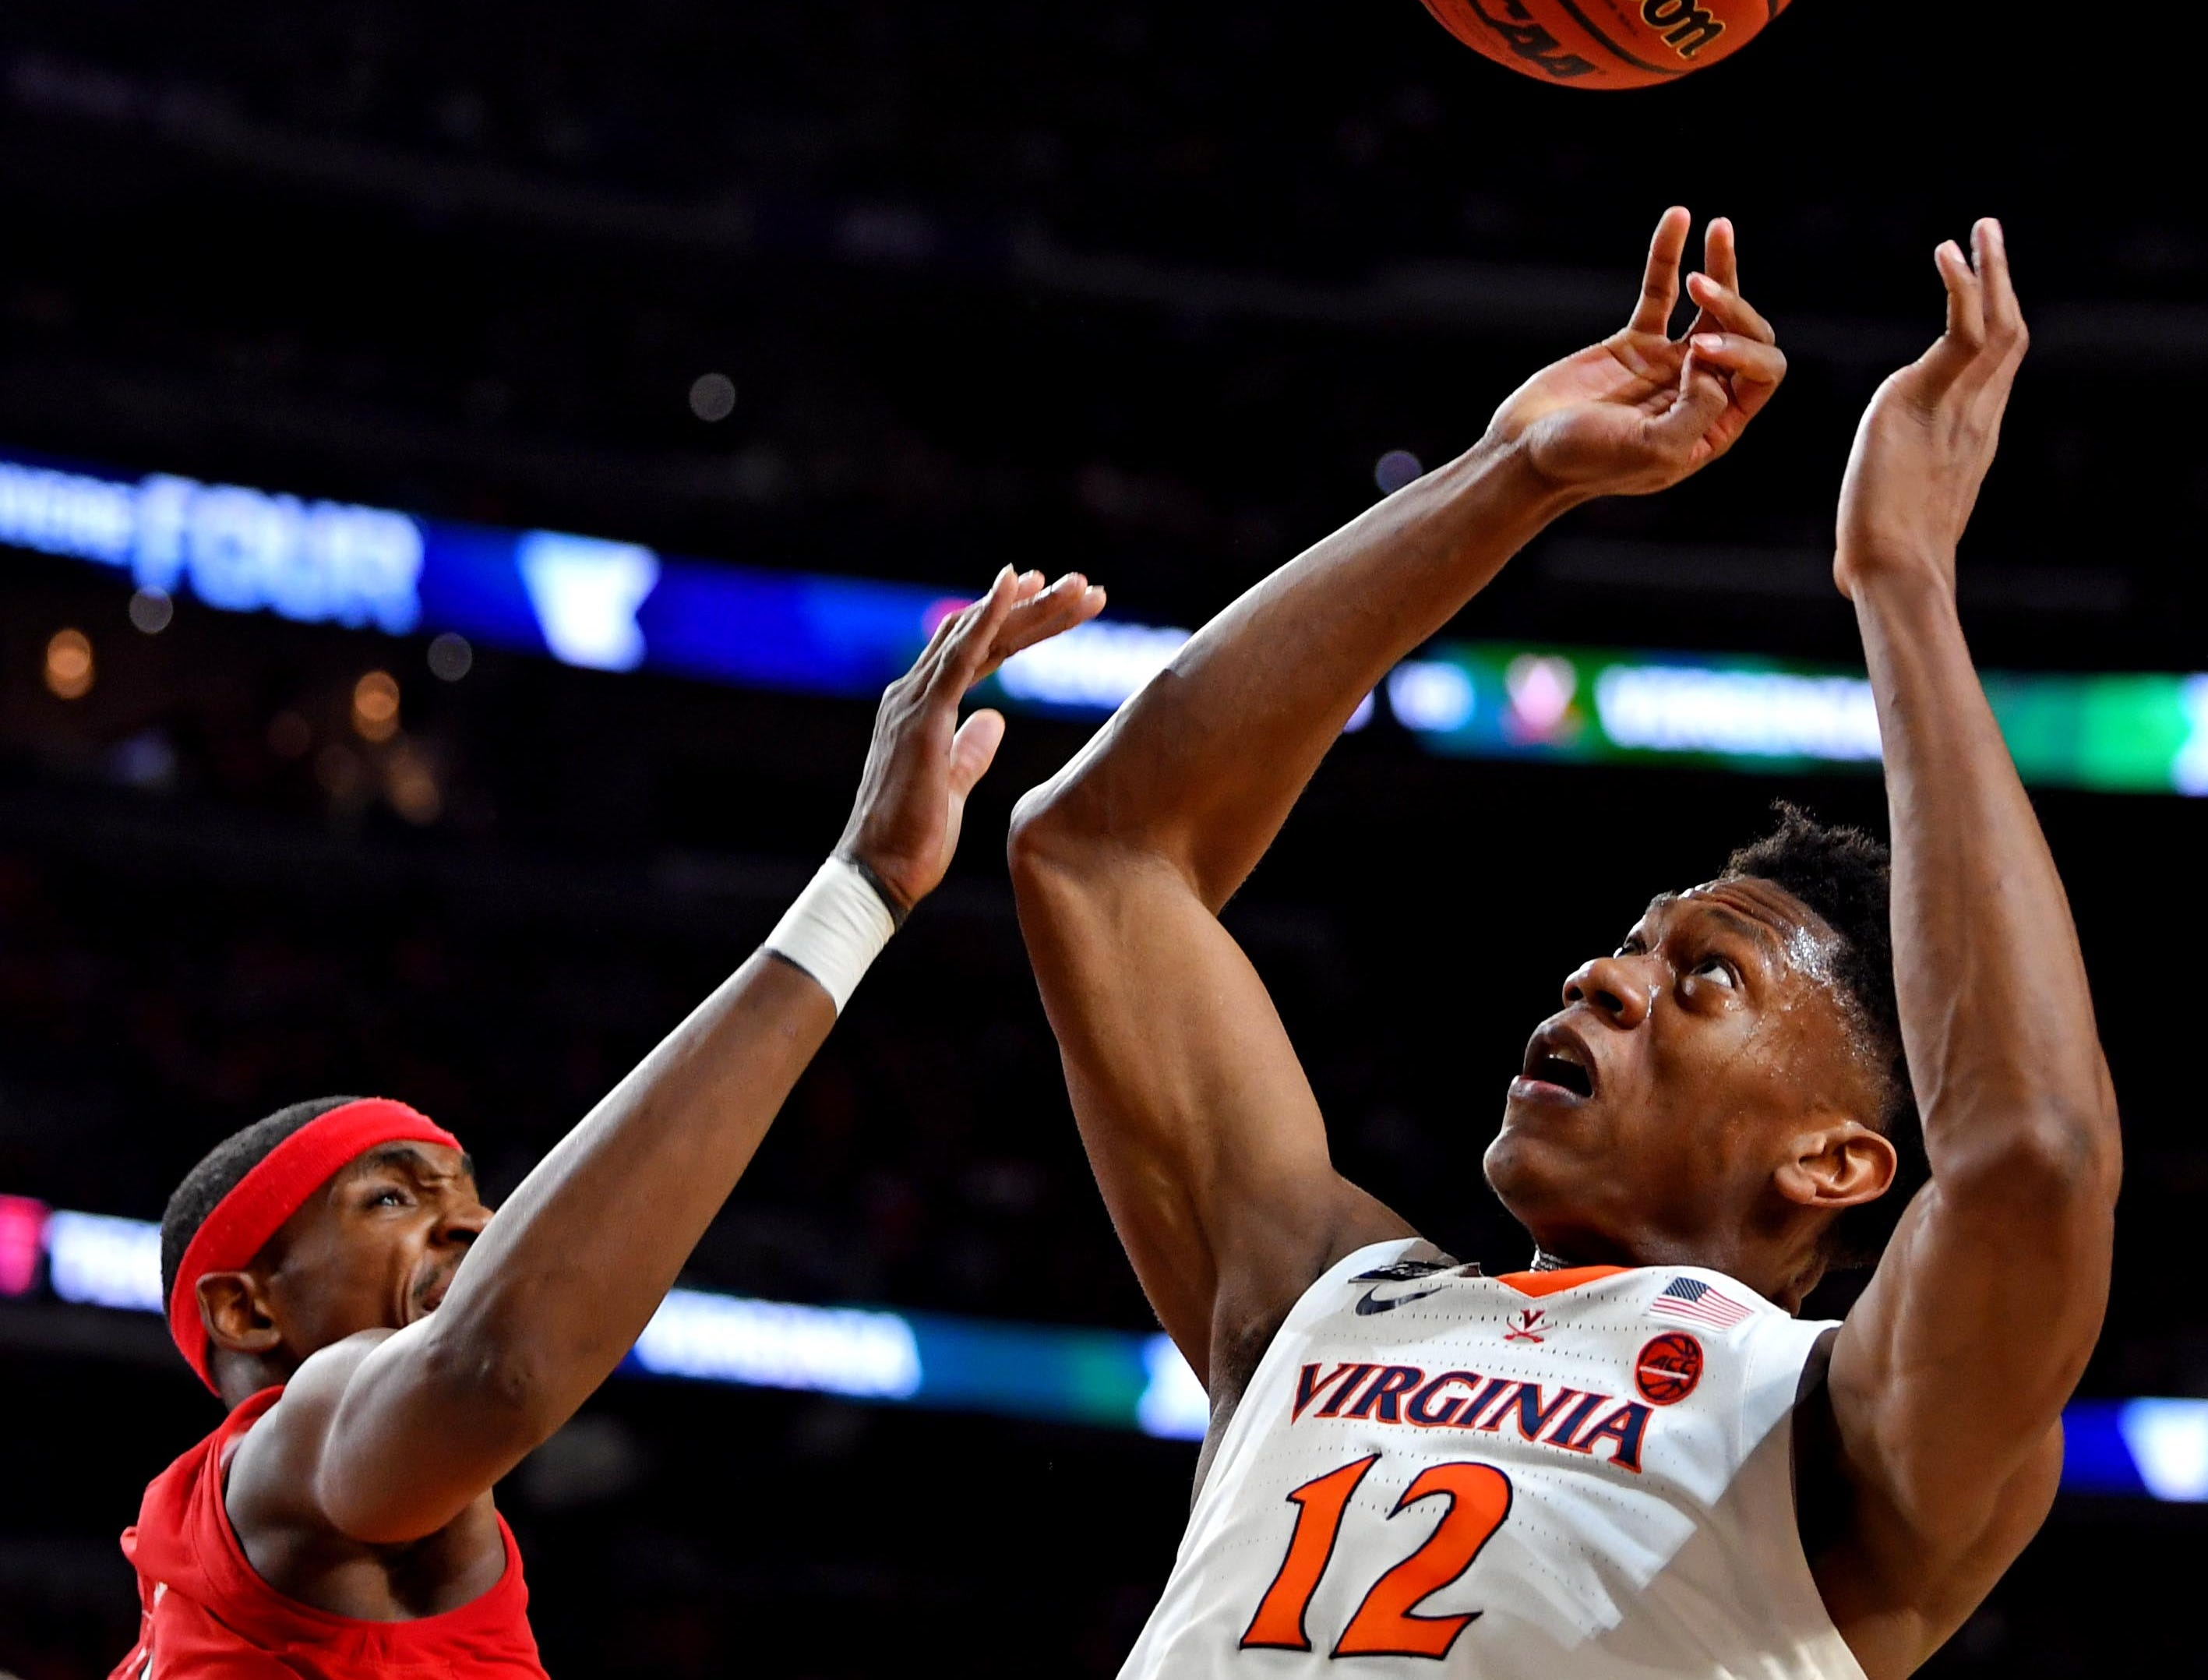 Apr 8, 2019; Minneapolis, MN, USA; Virginia Cavaliers guard De'Andre Hunter (12) and Texas Tech Red Raiders forward Tariq Owens (11) go for a rebound during the first half in the championship game of the 2019 men's Final Four at US Bank Stadium. Mandatory Credit: Bob Donnan-USA TODAY Sports